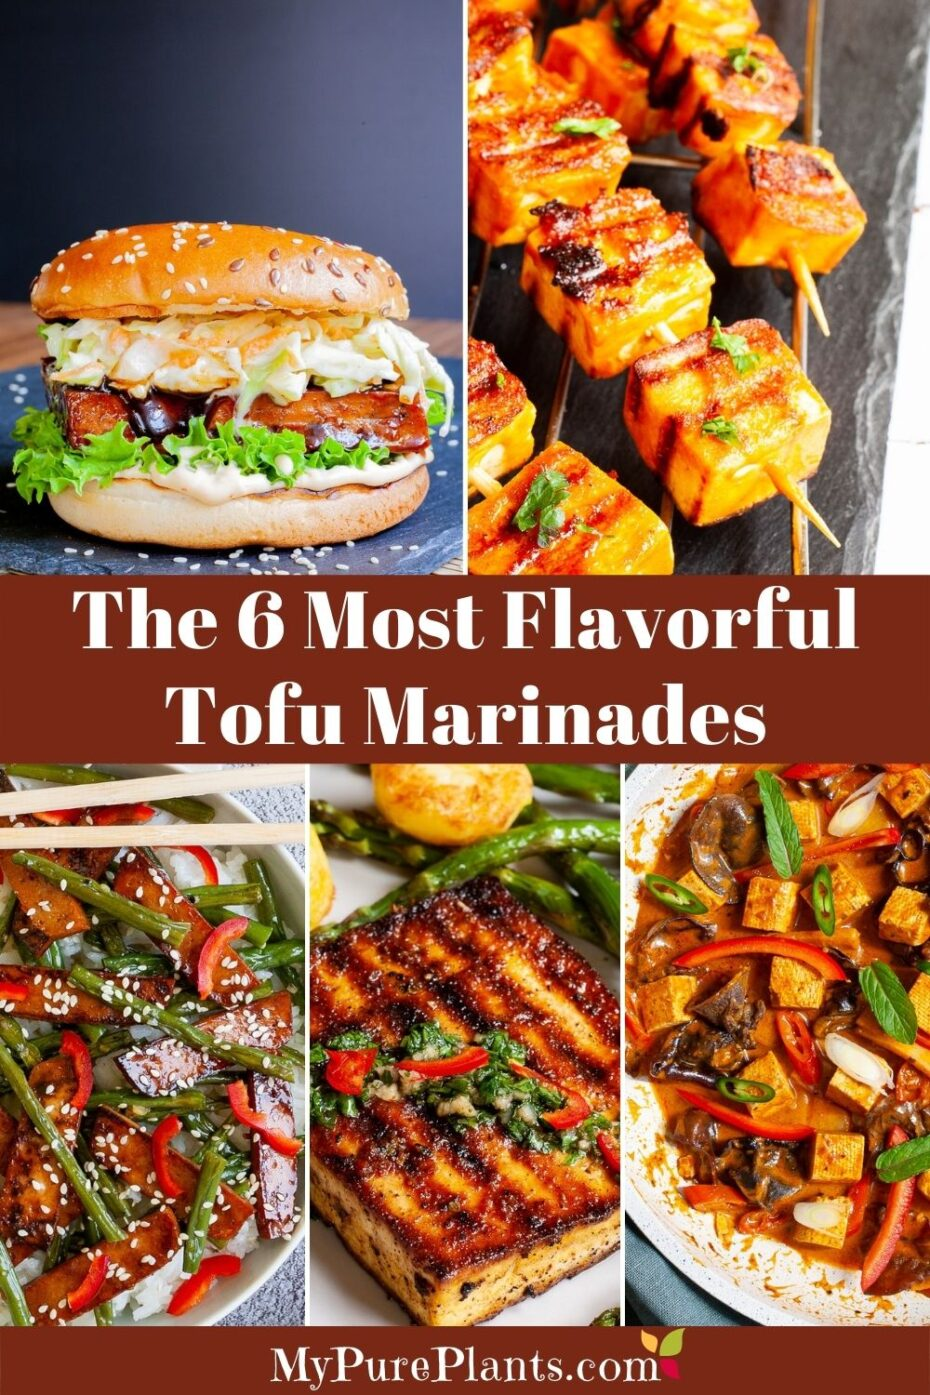 5 photo collage of colorful dishes with a text overlay saying The 6 Most Flavorful Tofu Marinades